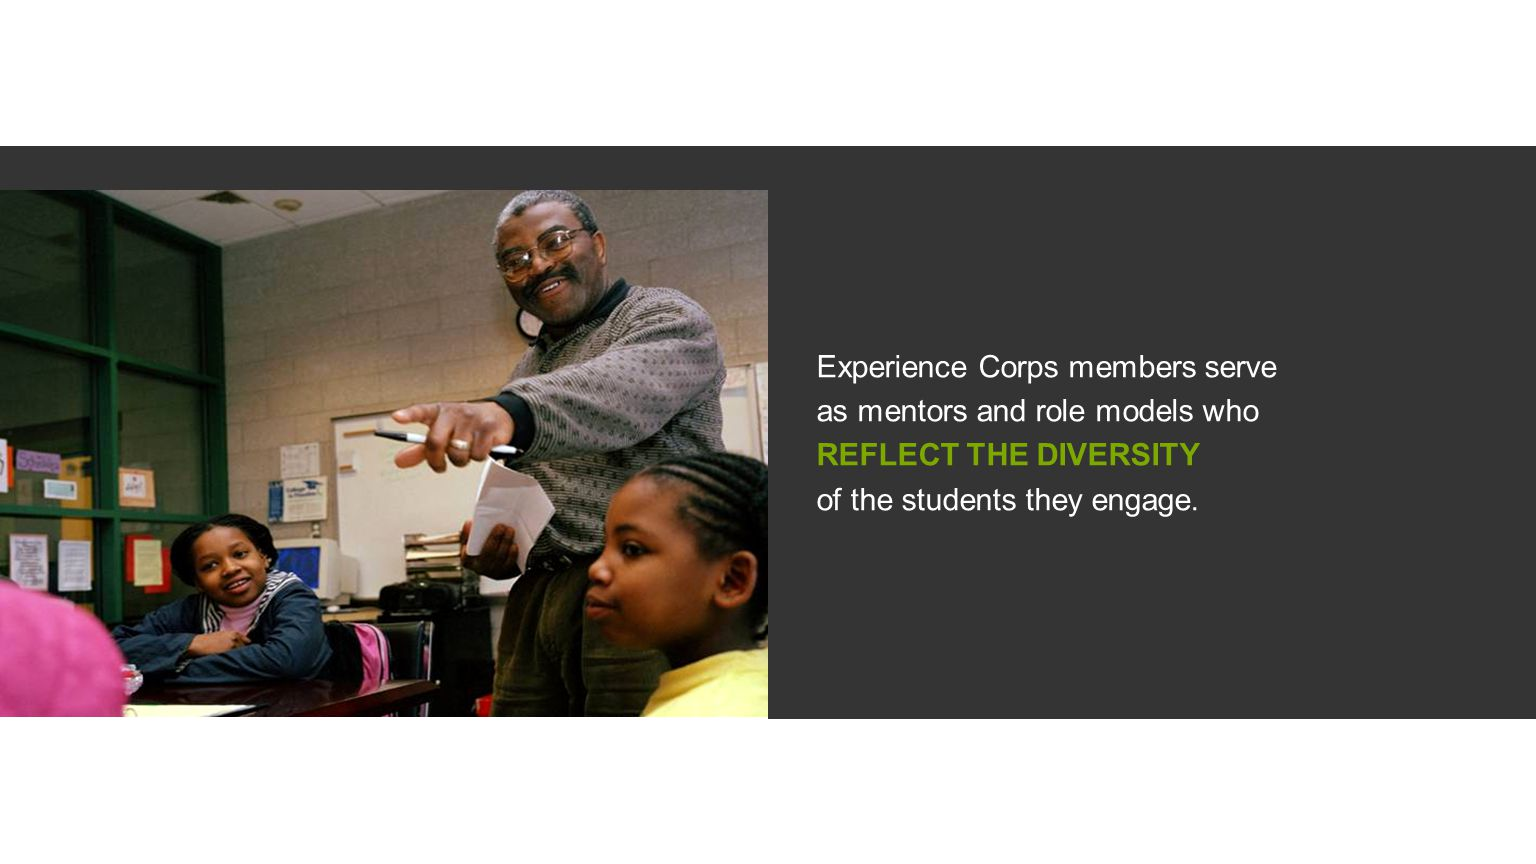 Experience Corps members serve as mentors and role models who REFLECT THE DIVERSITY of the students they engage.